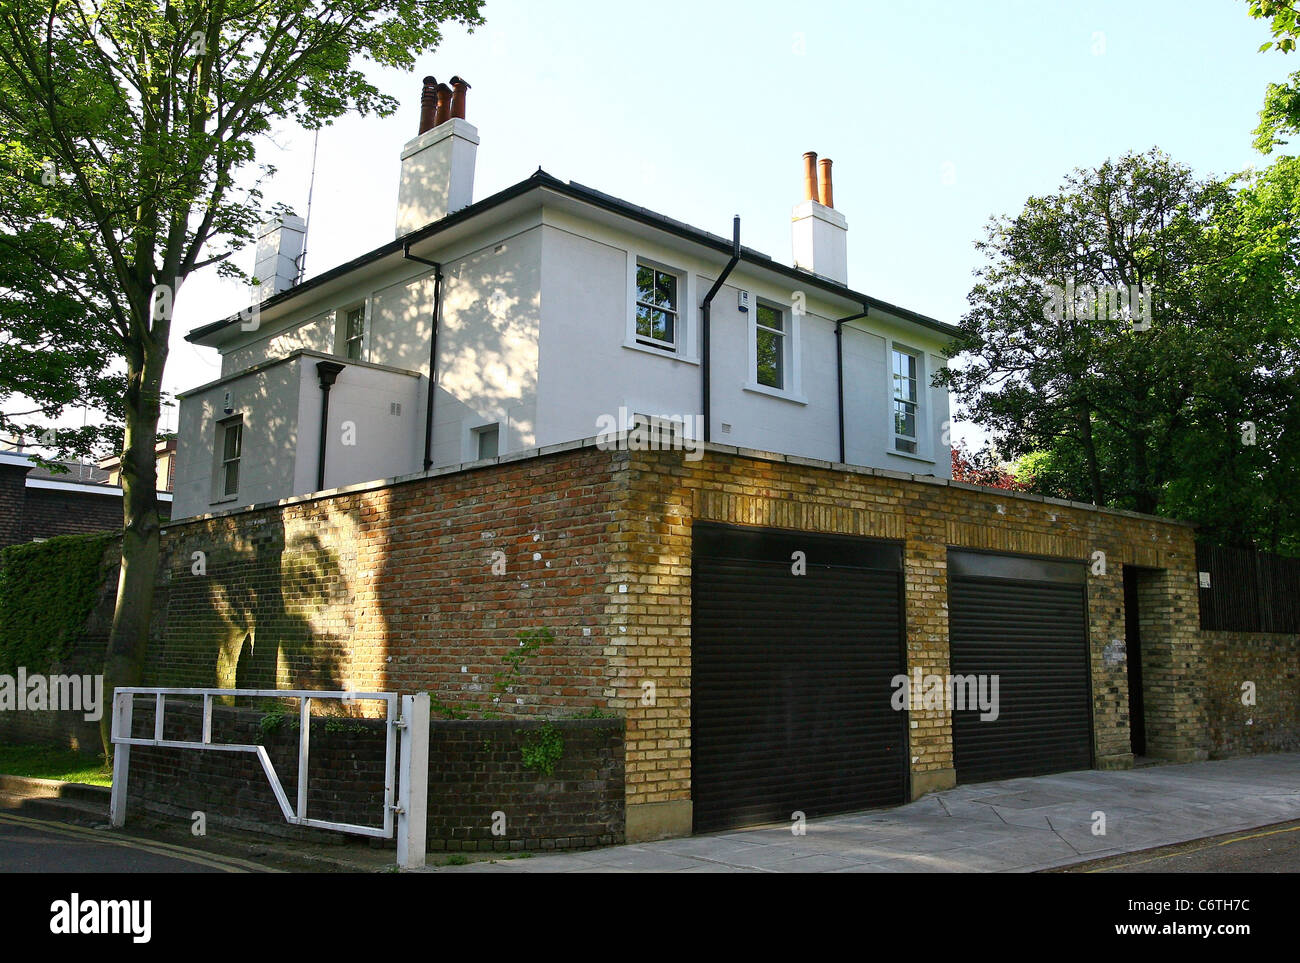 the exterior of kate moss house london england 21 05 10 mark rh alamy com